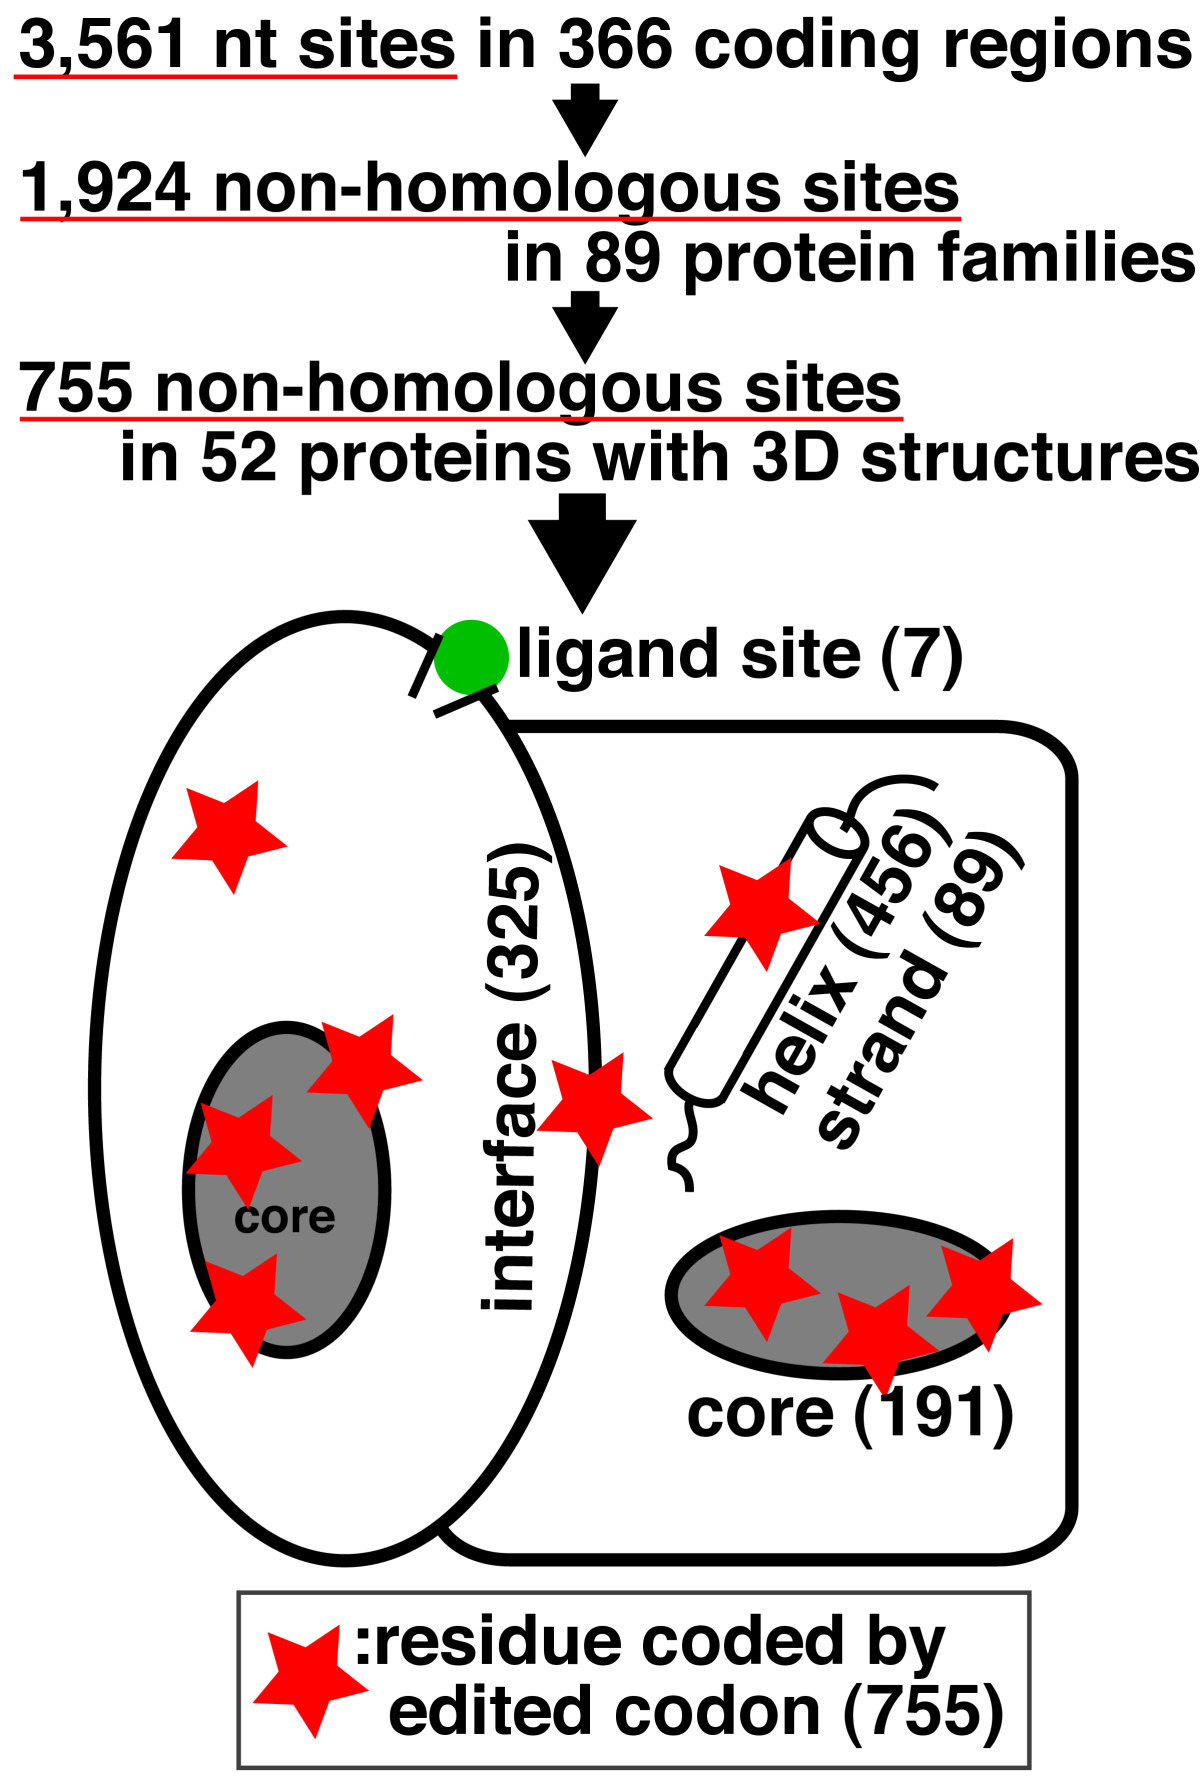 https://static-content.springer.com/image/art%3A10.1186%2F1471-2229-8-79/MediaObjects/12870_2008_Article_287_Fig2_HTML.jpg